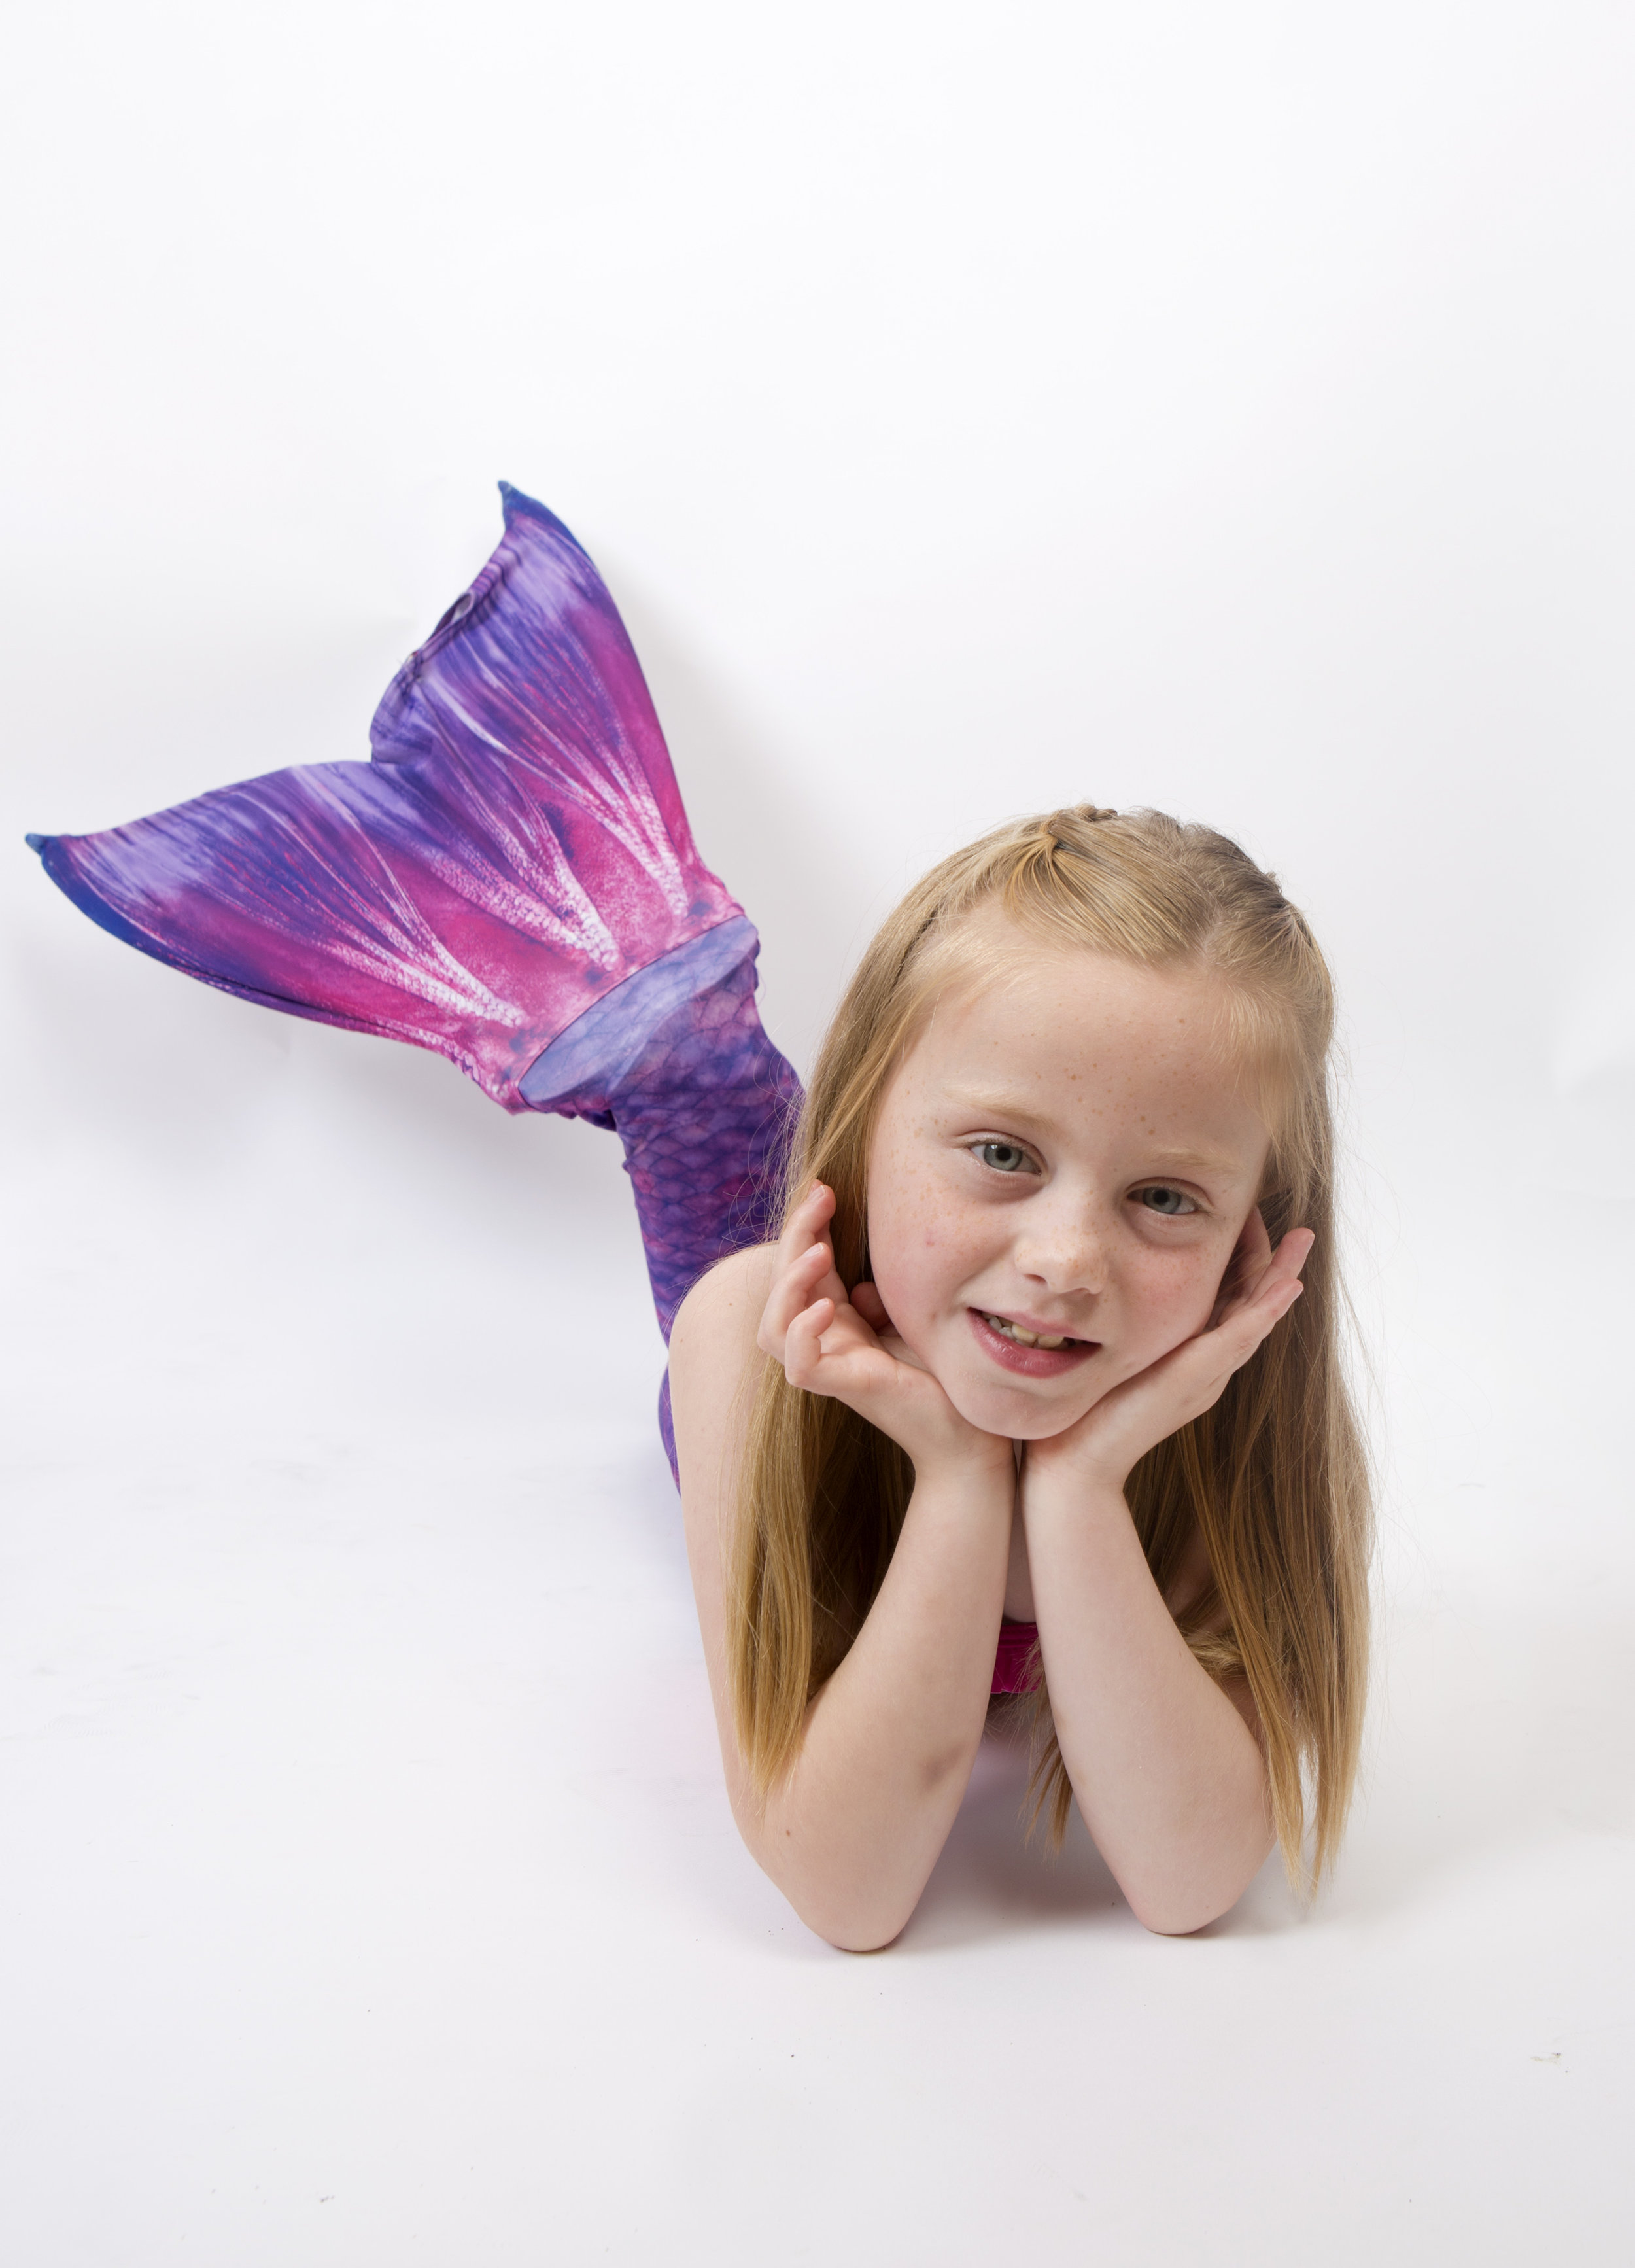 http://www.dailymail.co.uk/health/article-4986910/The-little-mermaid-s-wish-really-did-come-true.html